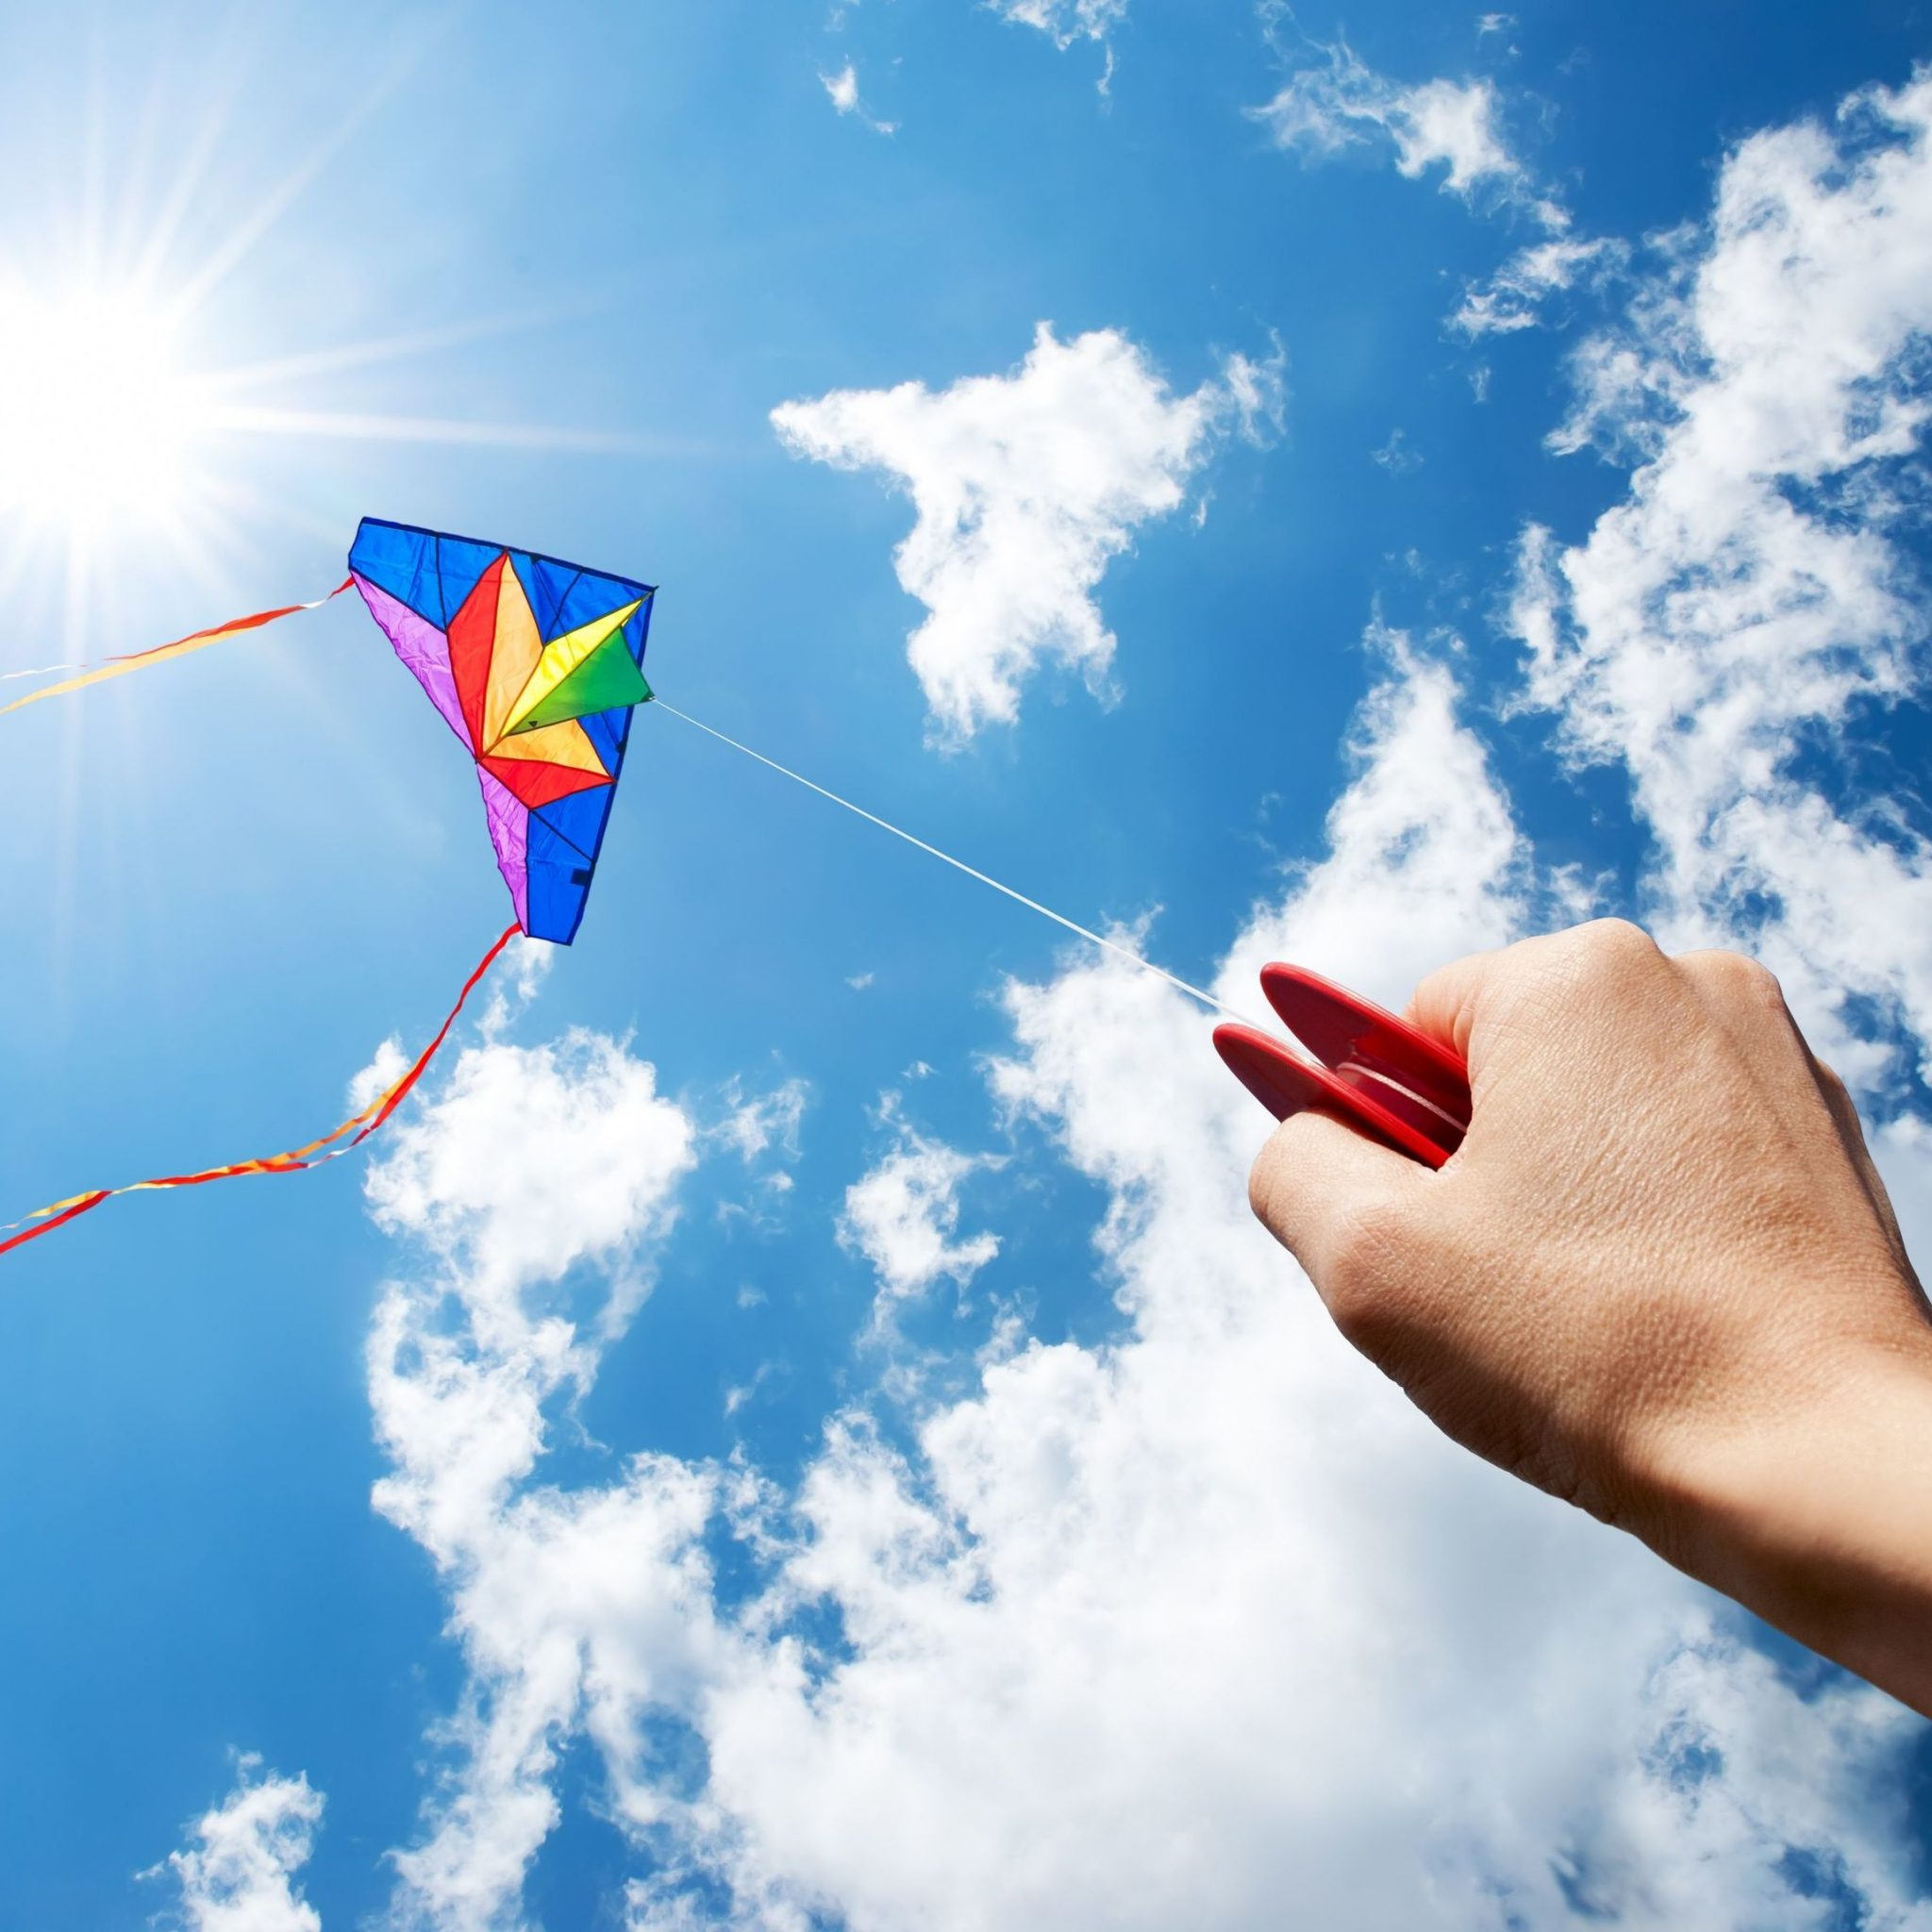 HD Wallpaper Of A Kite Flying High PaperPull 2048x2048